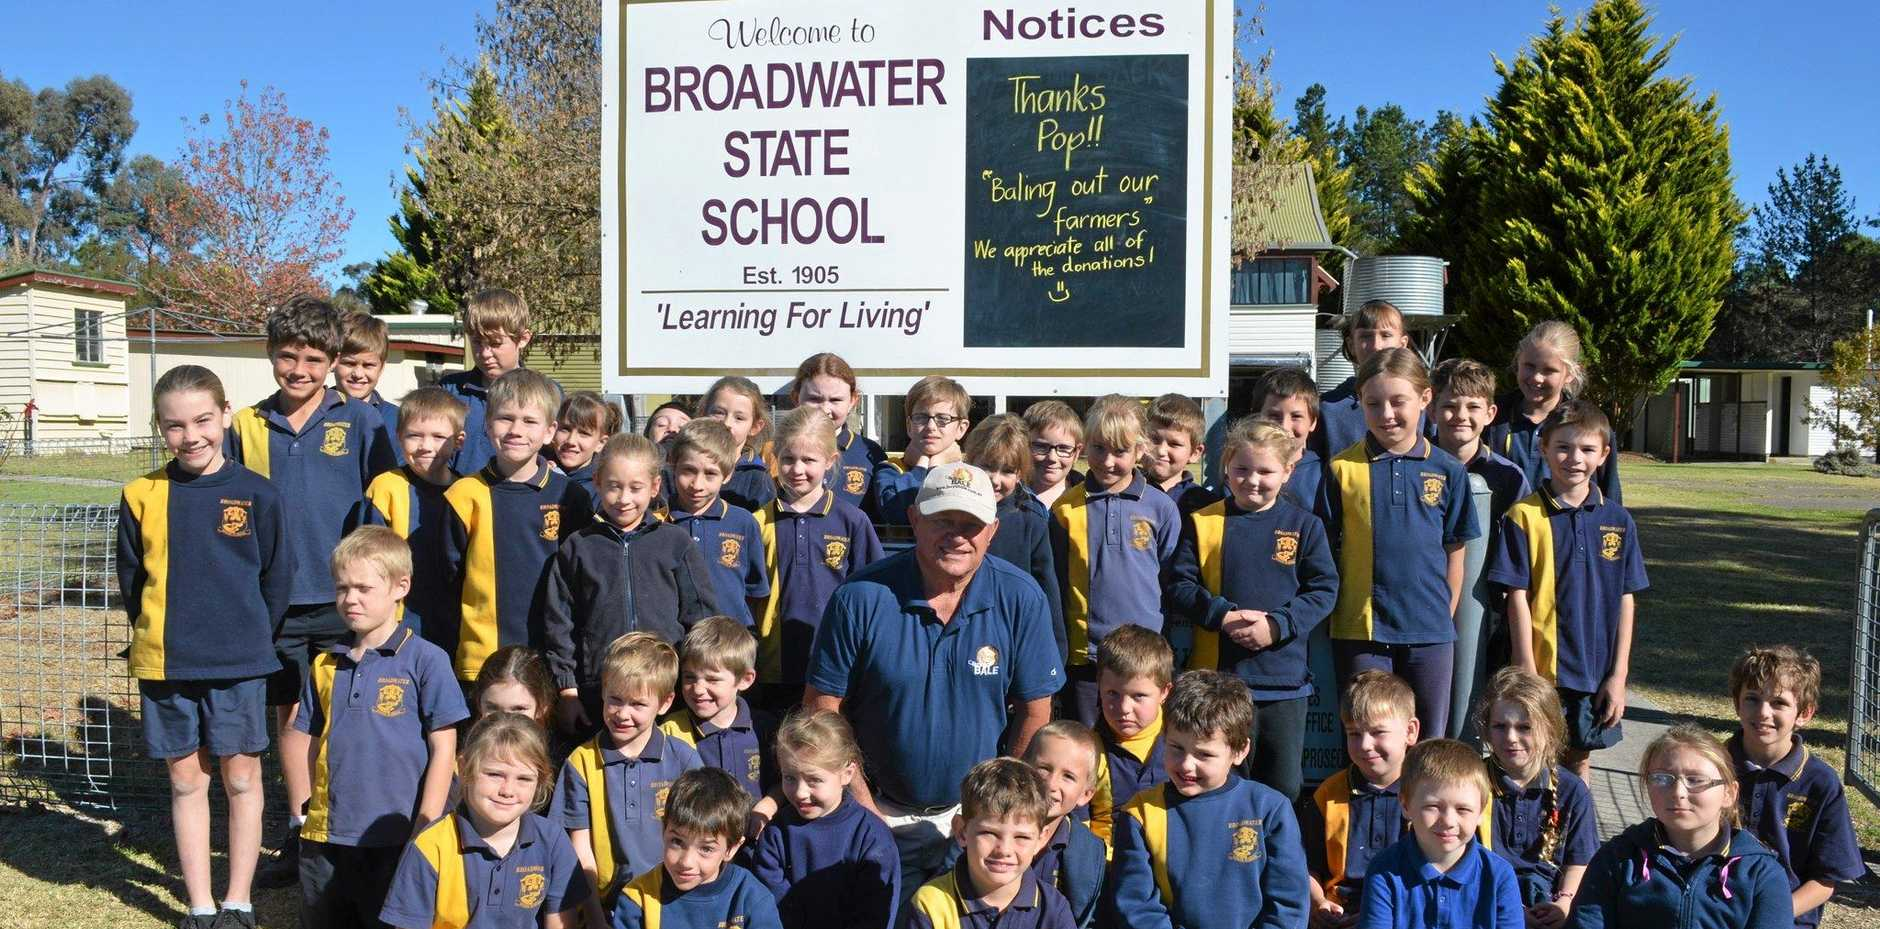 Broadwater State School students and Terry Byrnes from Buy a Bale are thanking everyone for their support.